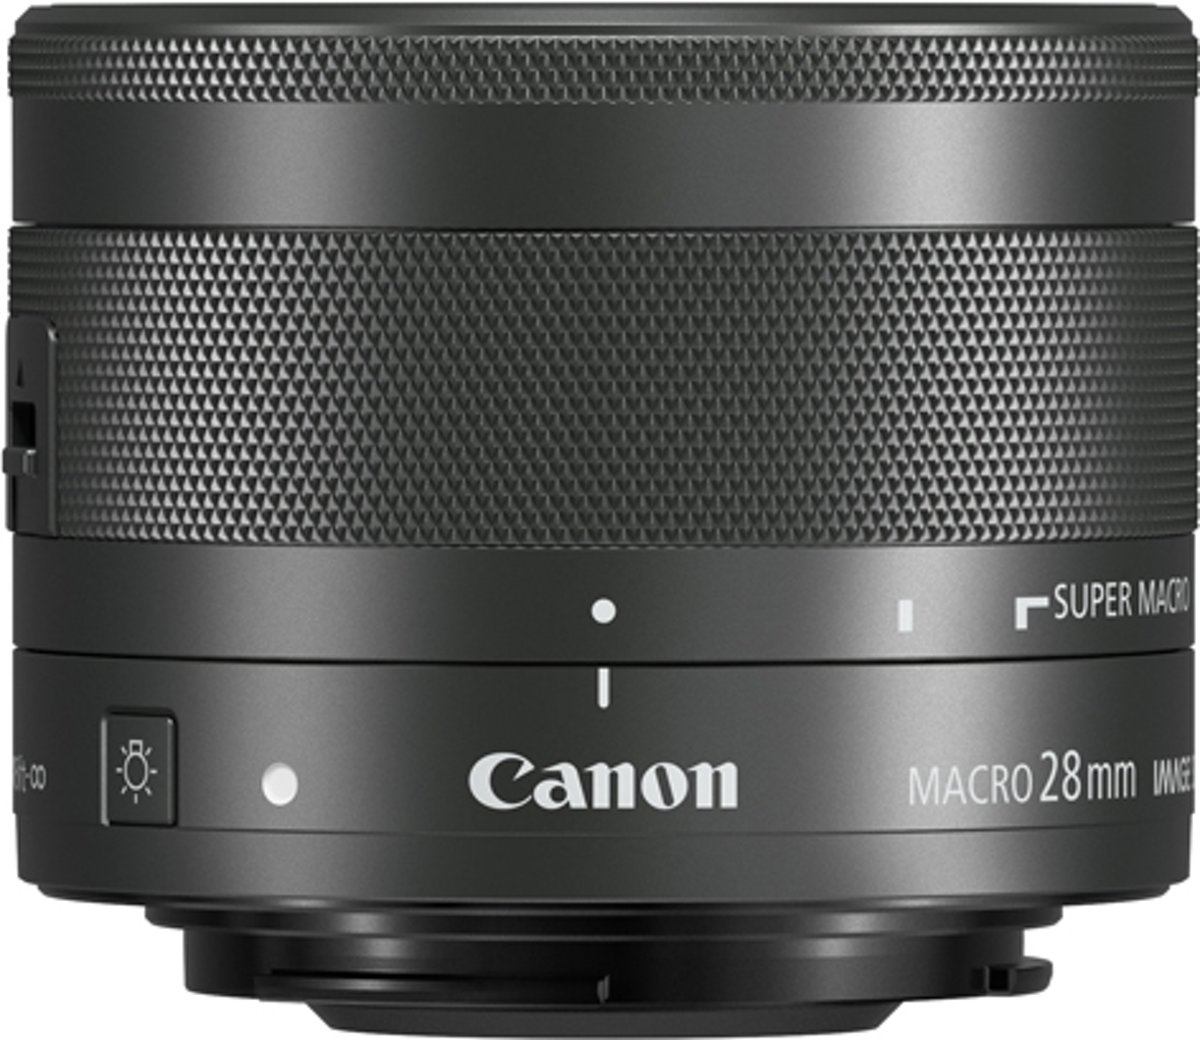 Tamron Lens 18 200mm Di Iii Vc F 3 5 6 For Canon Eos M Mount Free 35 63 Ef 28mm Is Stm Zwart